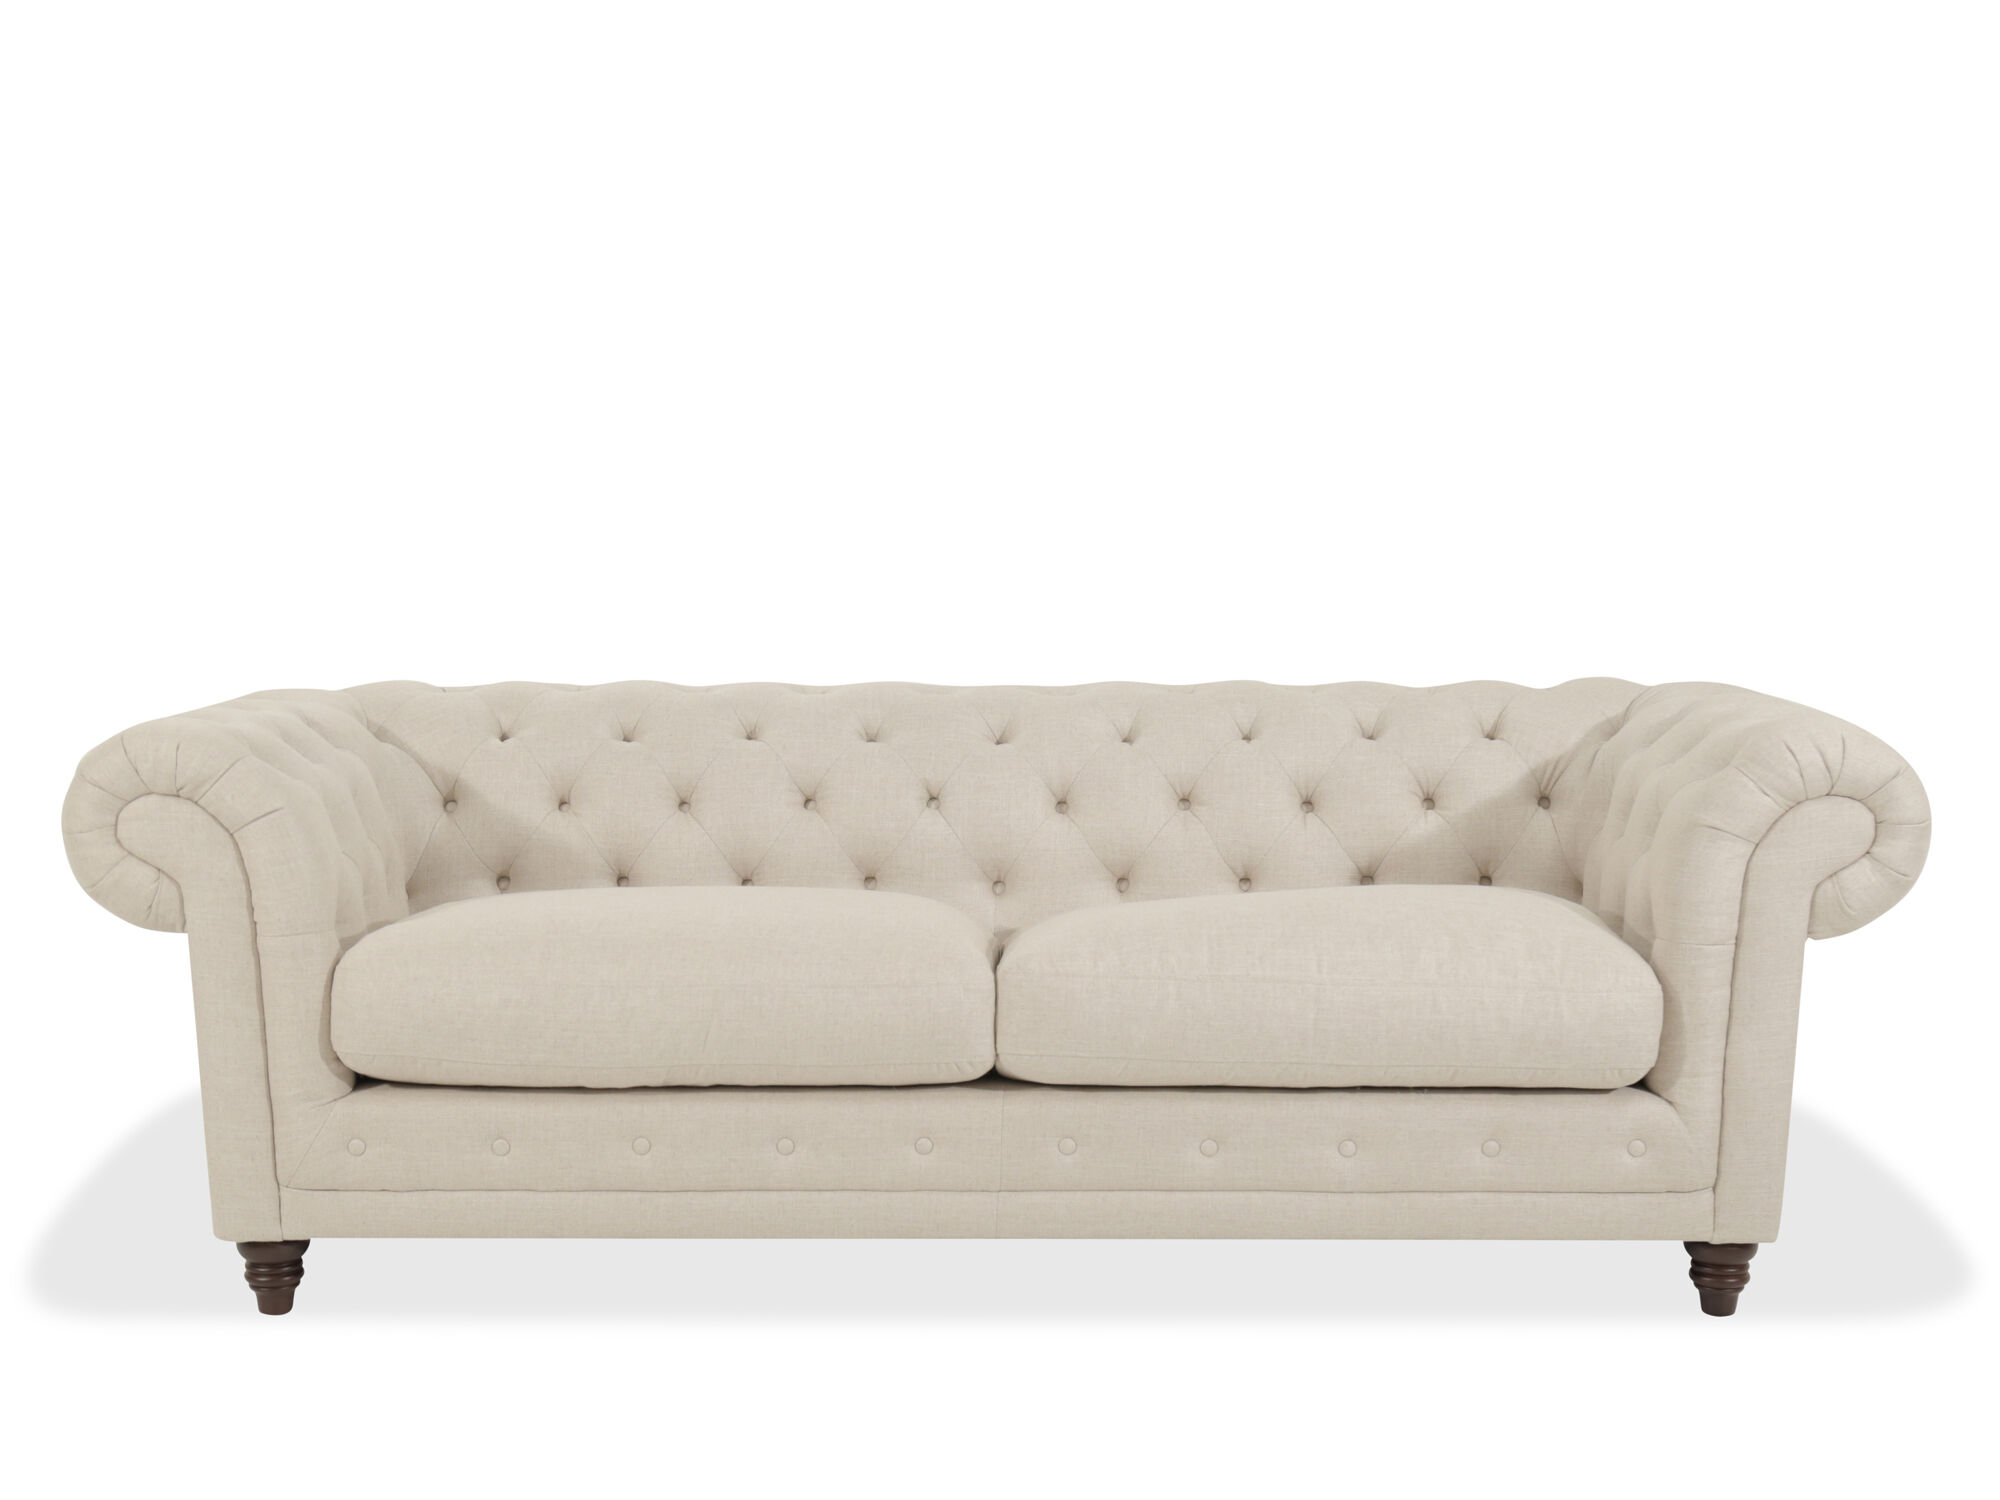 Chesterfield Sofa In Oatmeal Mathis Brothers Furniture